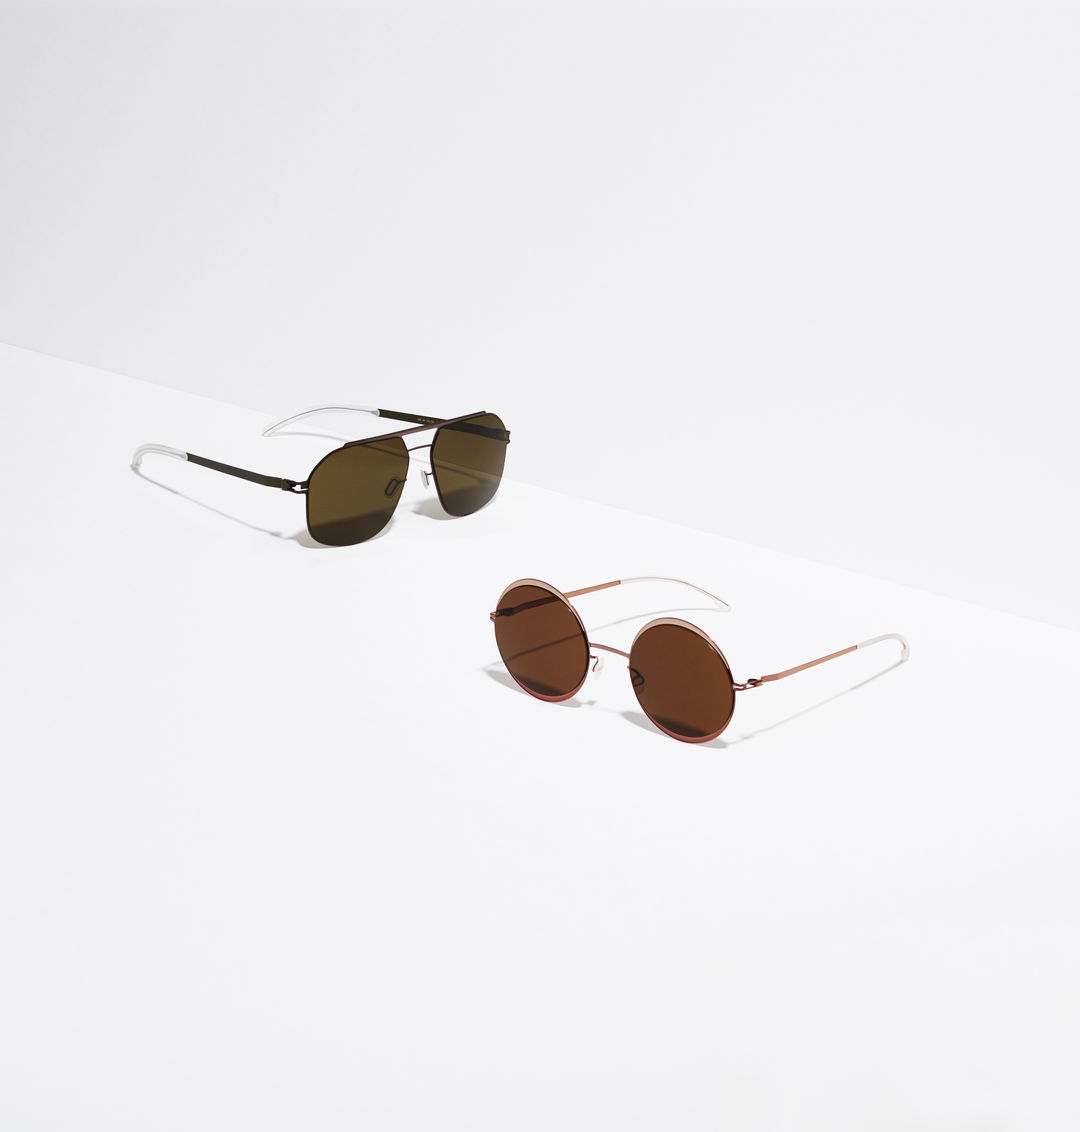 2baf0c2cd9ca3 MYKITA No1 Sun Selleck Mocca Camou Green Raw Brown Solid MYKITA Decades Sun  Iris Purple Bronze